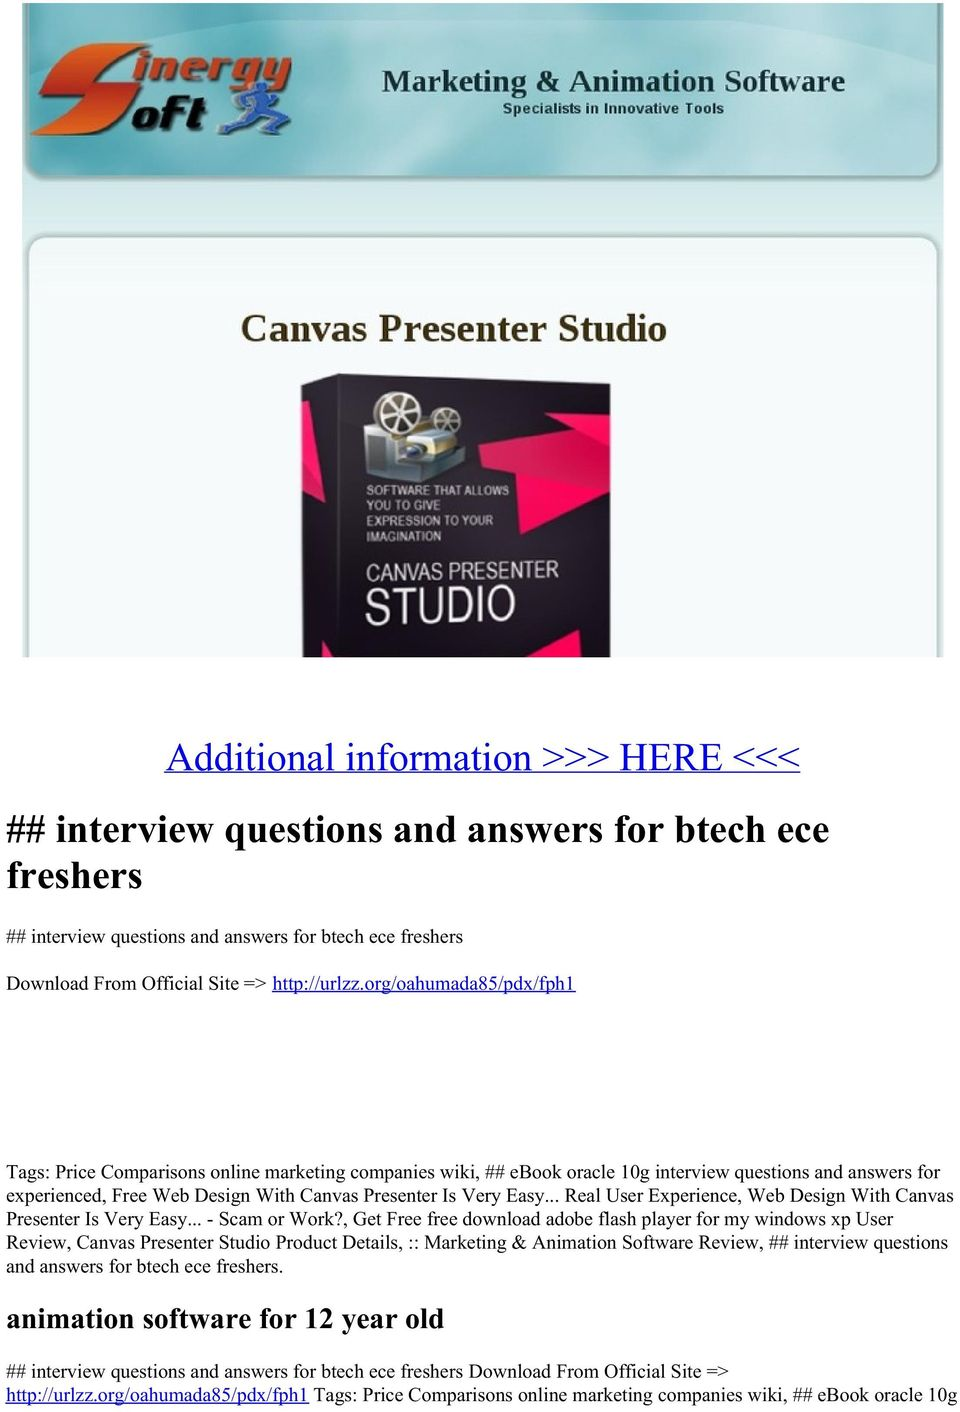 Easy... Real User Experience, Web Design With Canvas Presenter Is Very Easy... - Scam or Work?